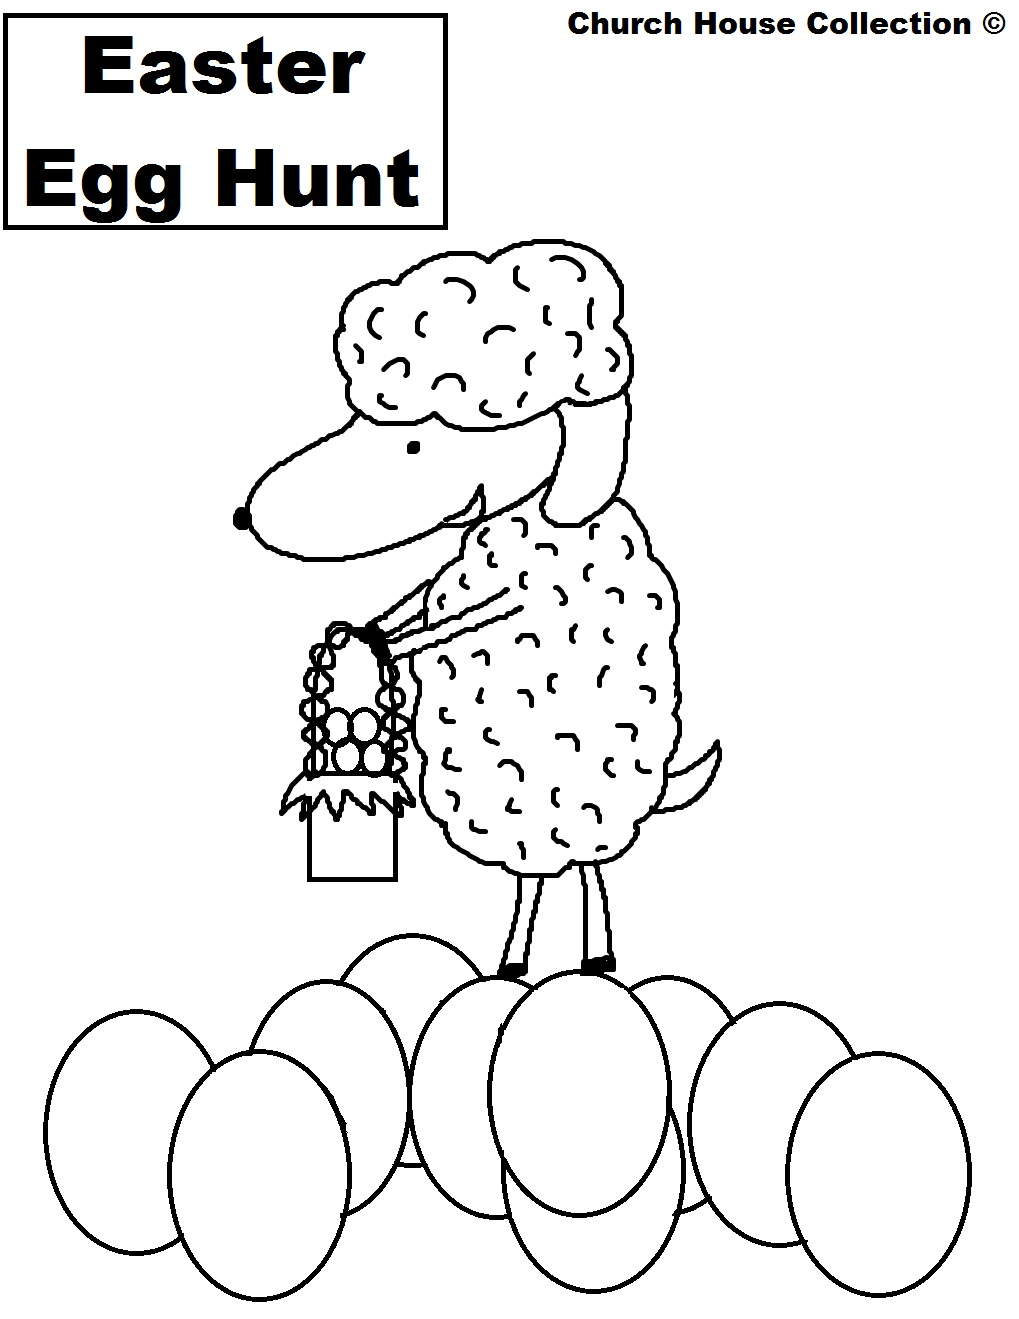 church house collection blog  easter egg hunt coloring page